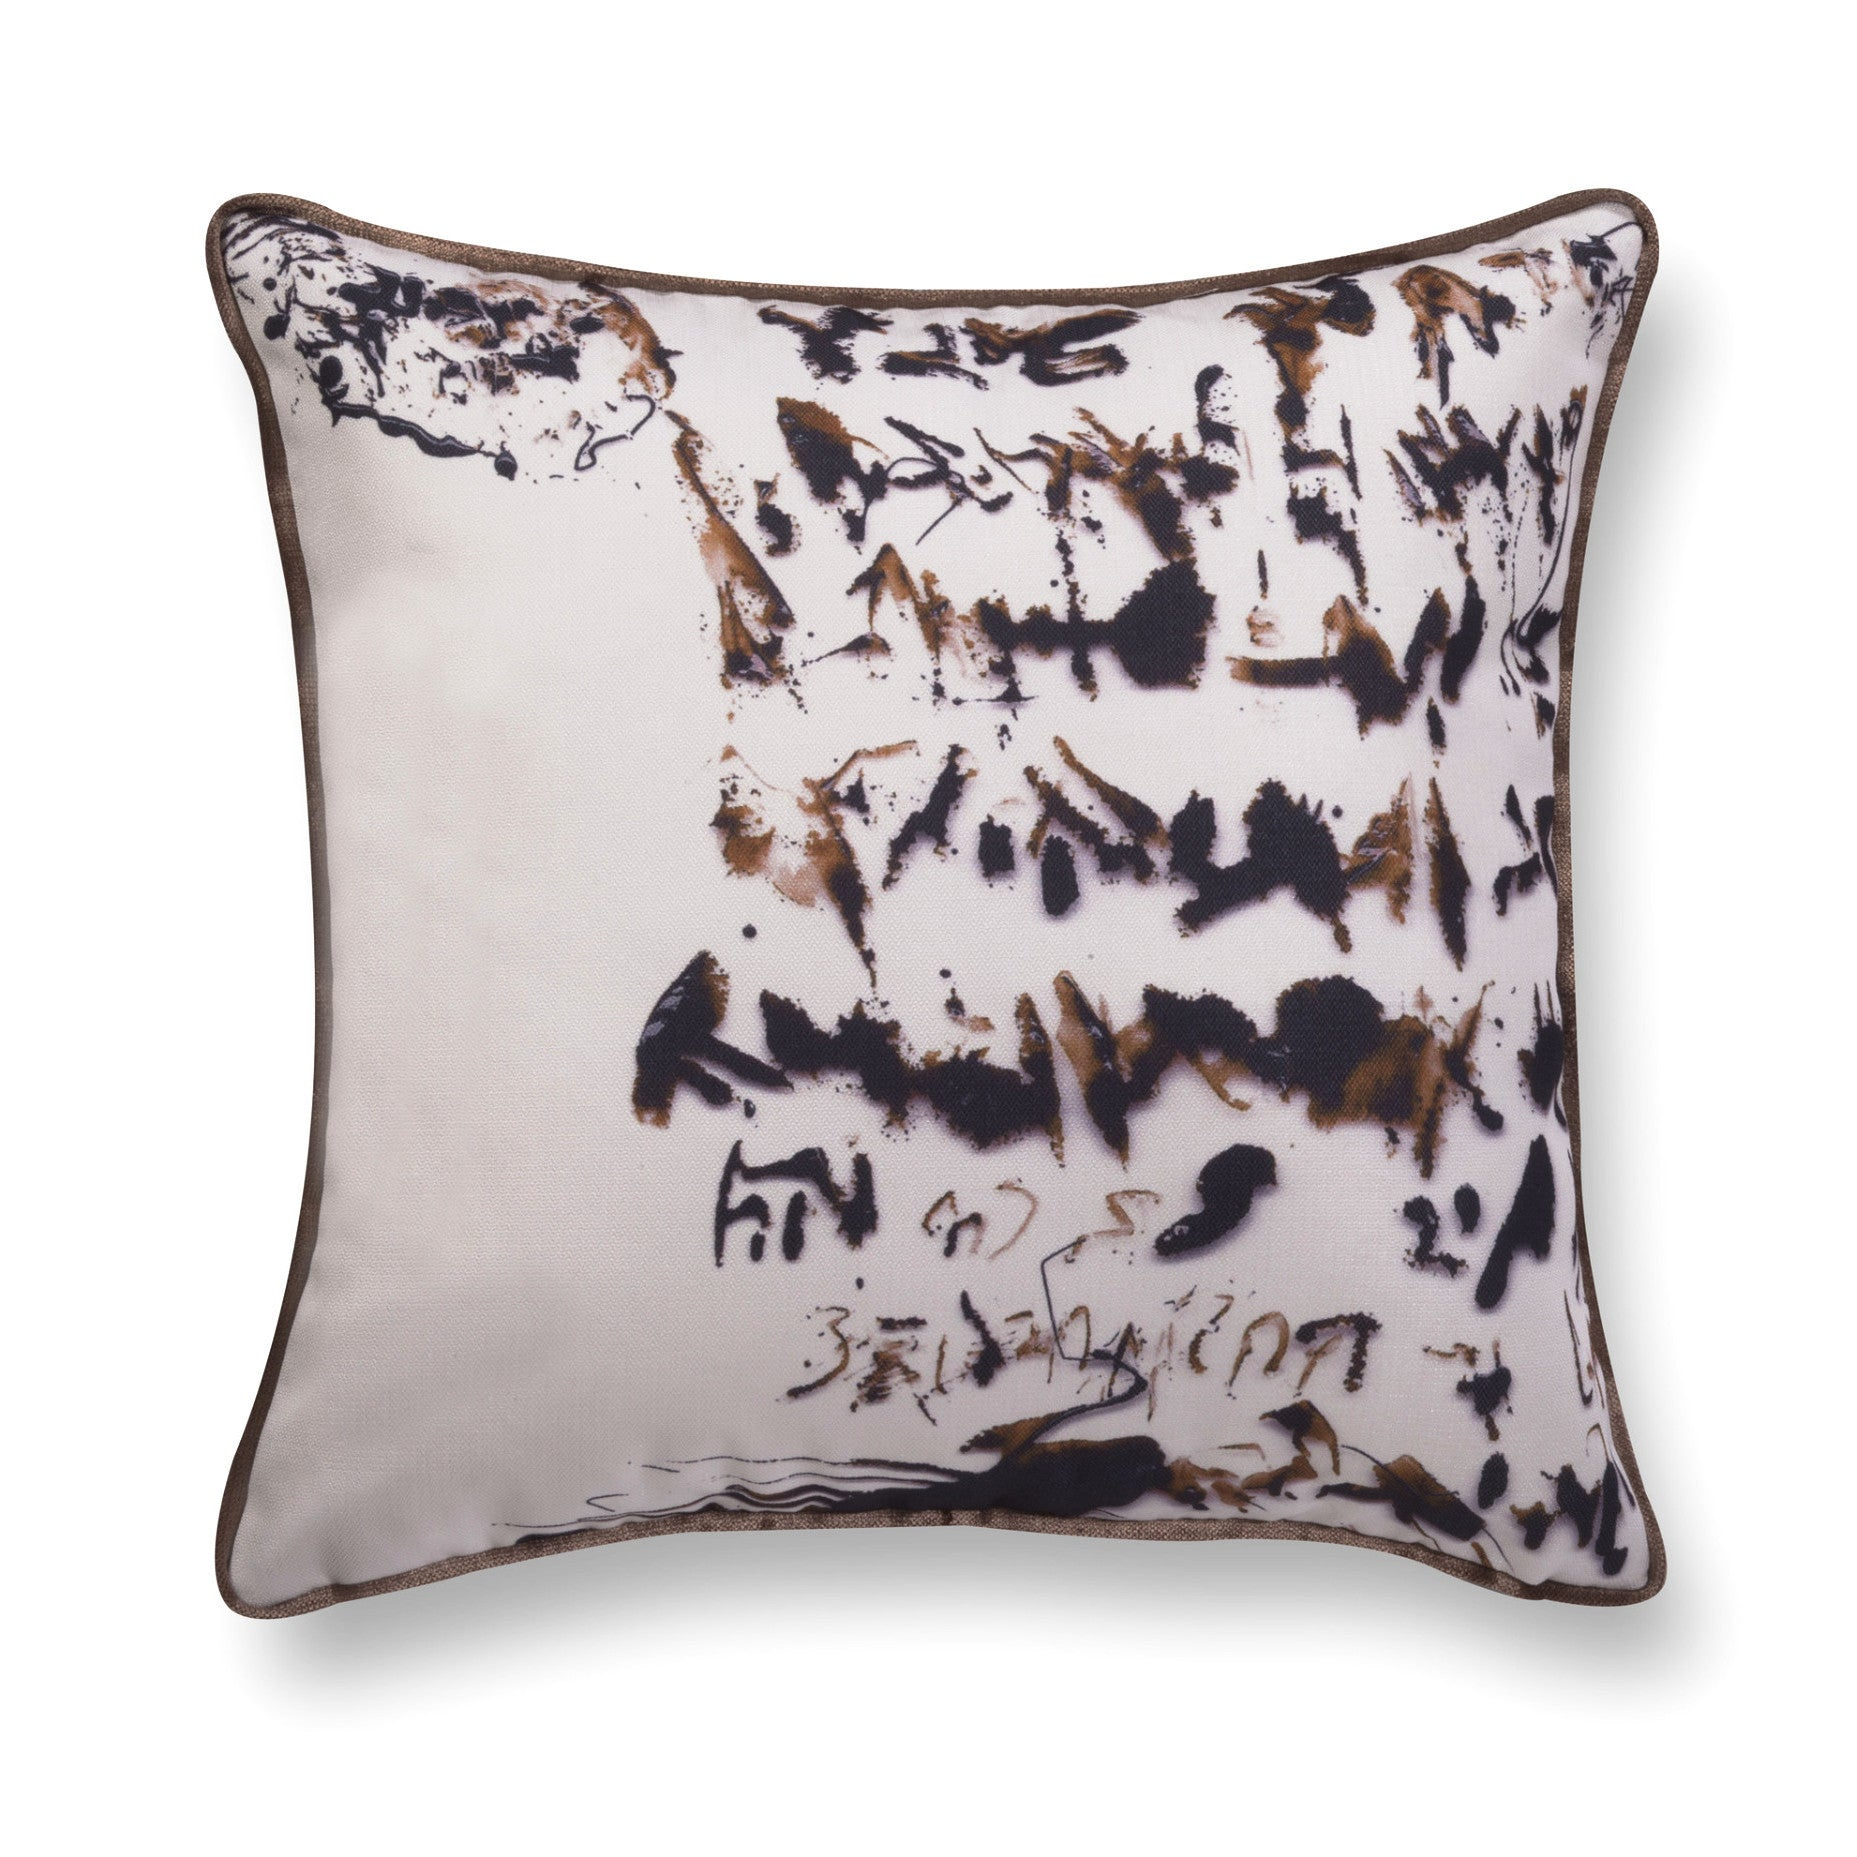 Velvet throw pillow - Enigmatic Script 7